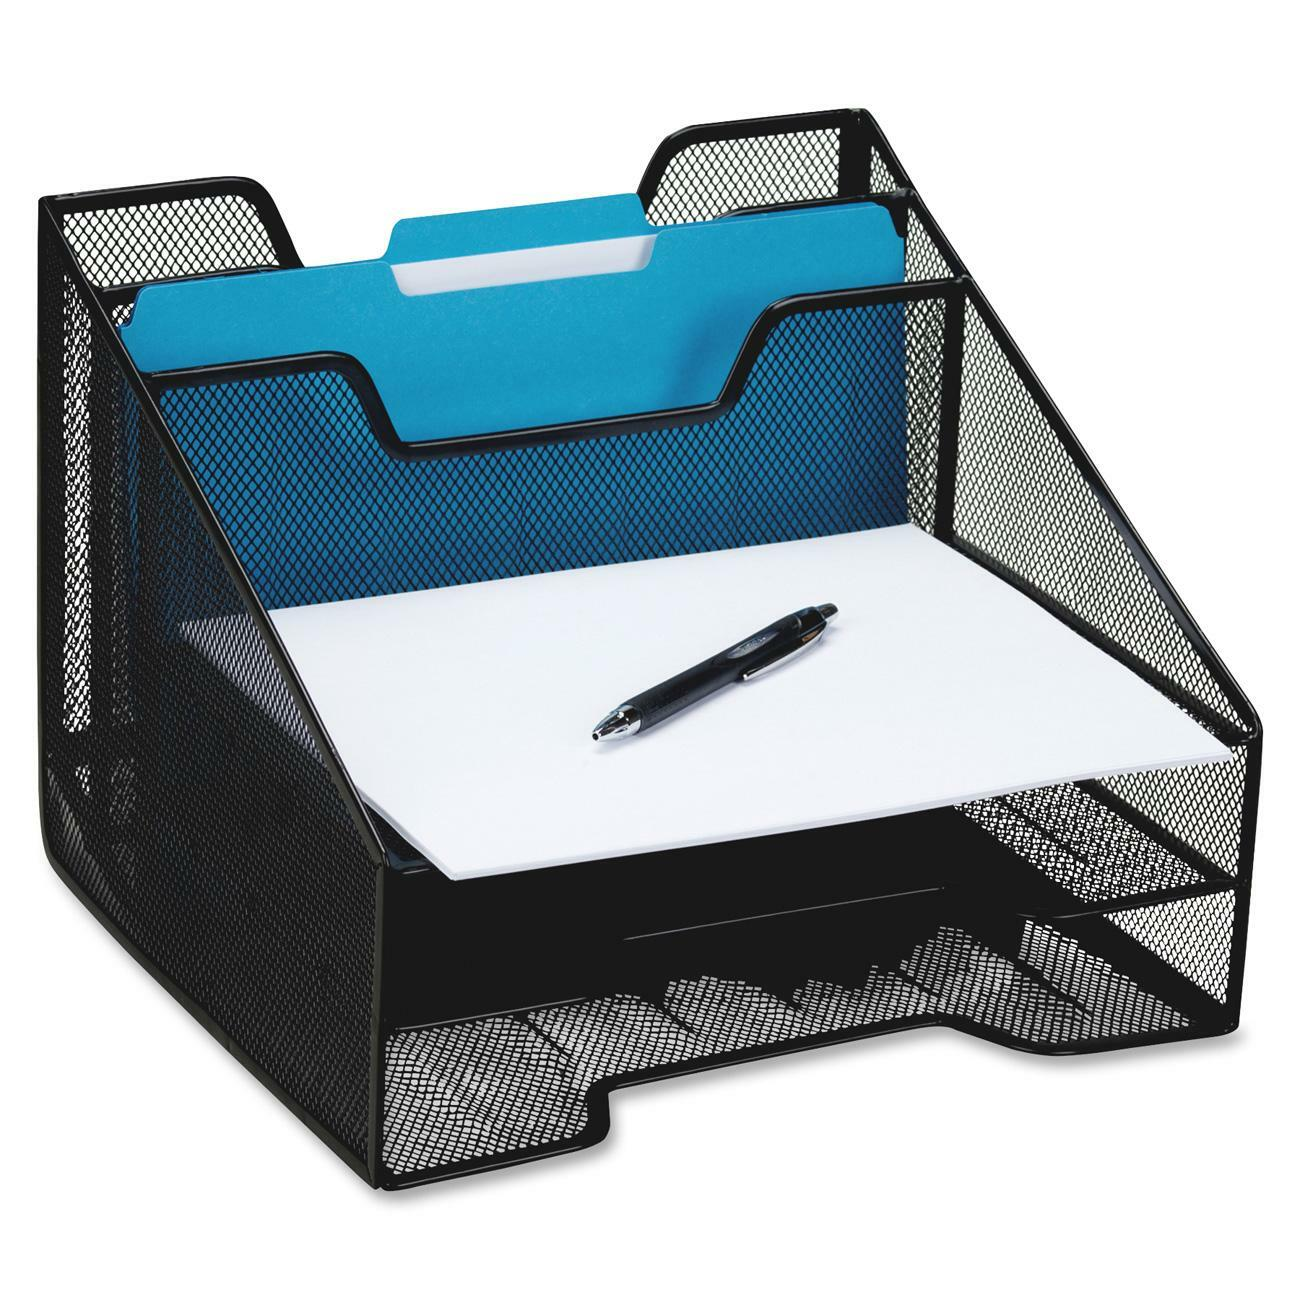 Mesh Combo Tray Includes Two Incline Sorting Vanes And Three Trays For Work E Organization Design Allows Easy Access